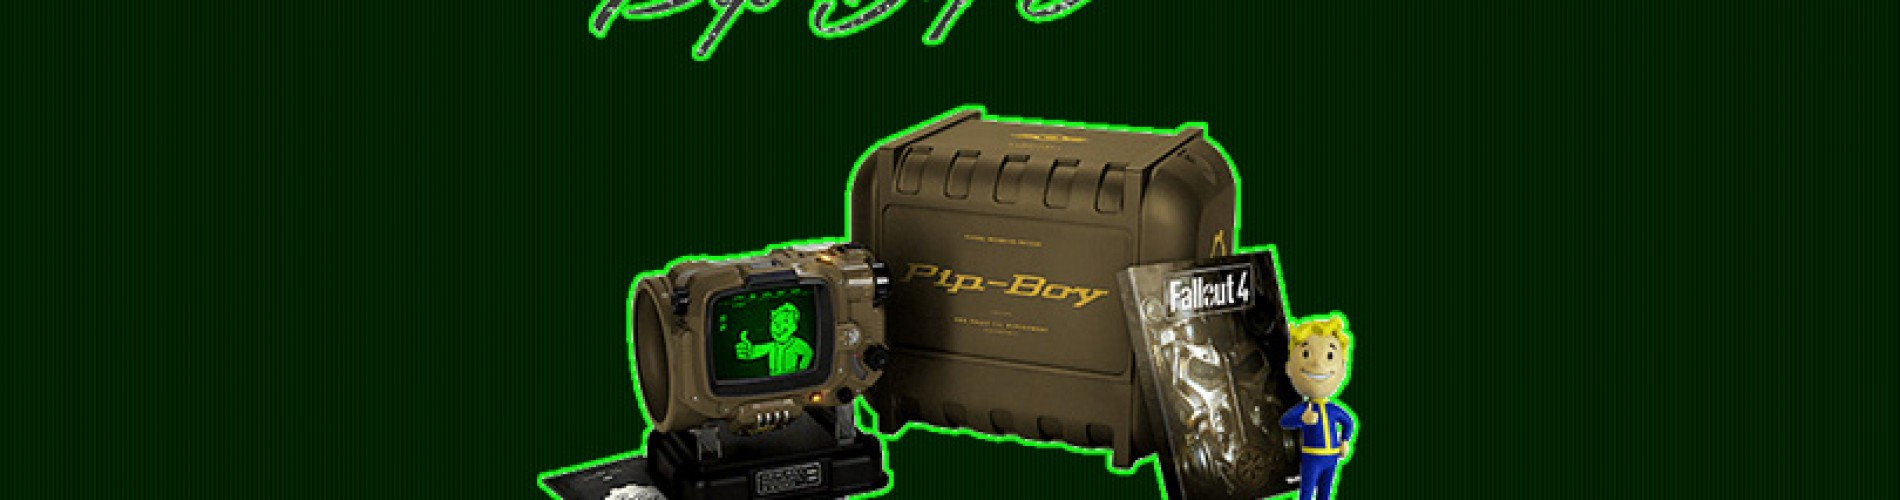 Fallout 4 will feature an actual Pip-Boy smart phone case